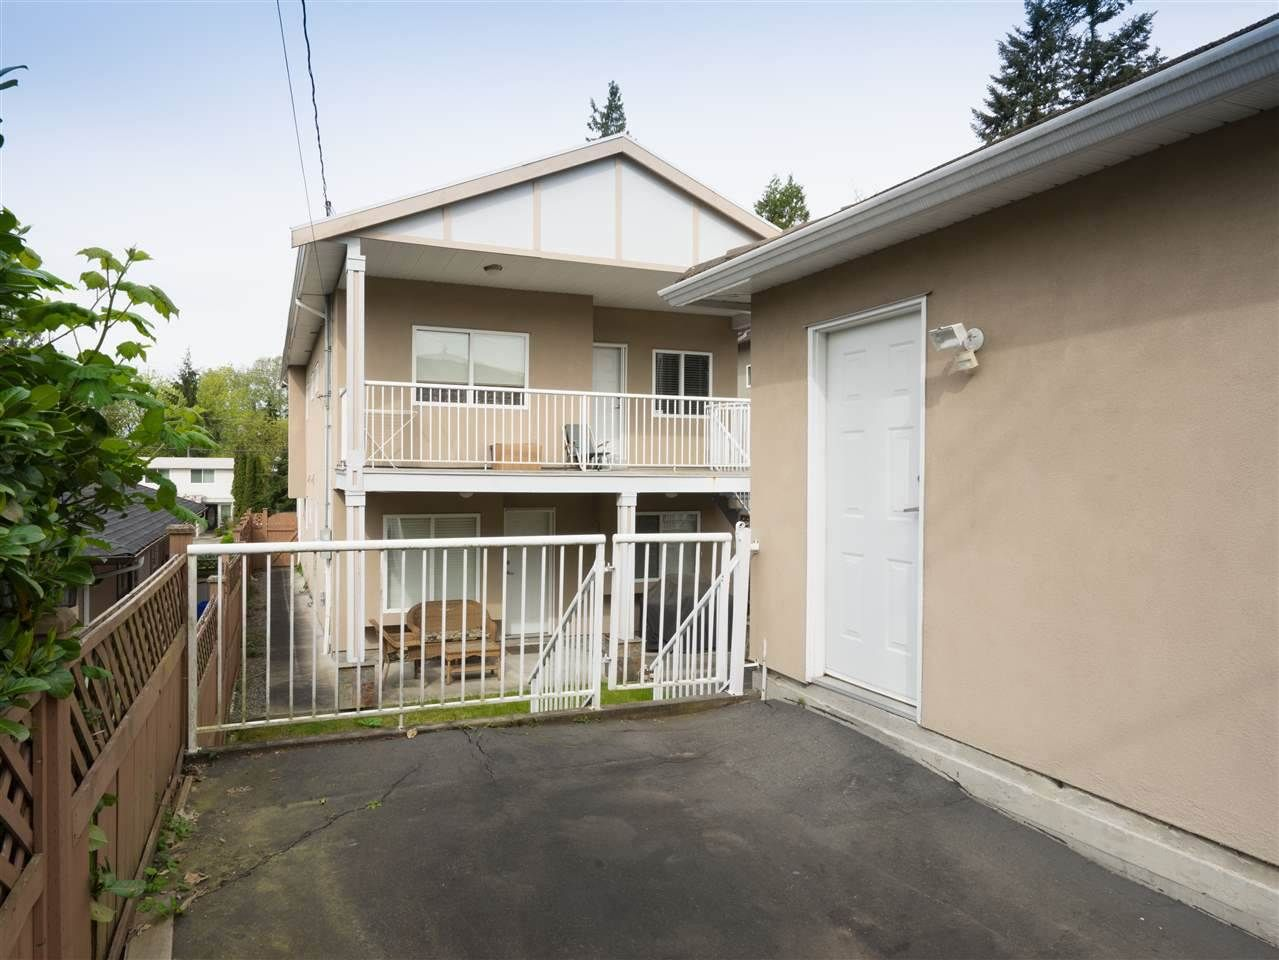 Photo 16: Photos: 2052 WESTVIEW Drive in North Vancouver: Central Lonsdale House for sale : MLS®# R2530544